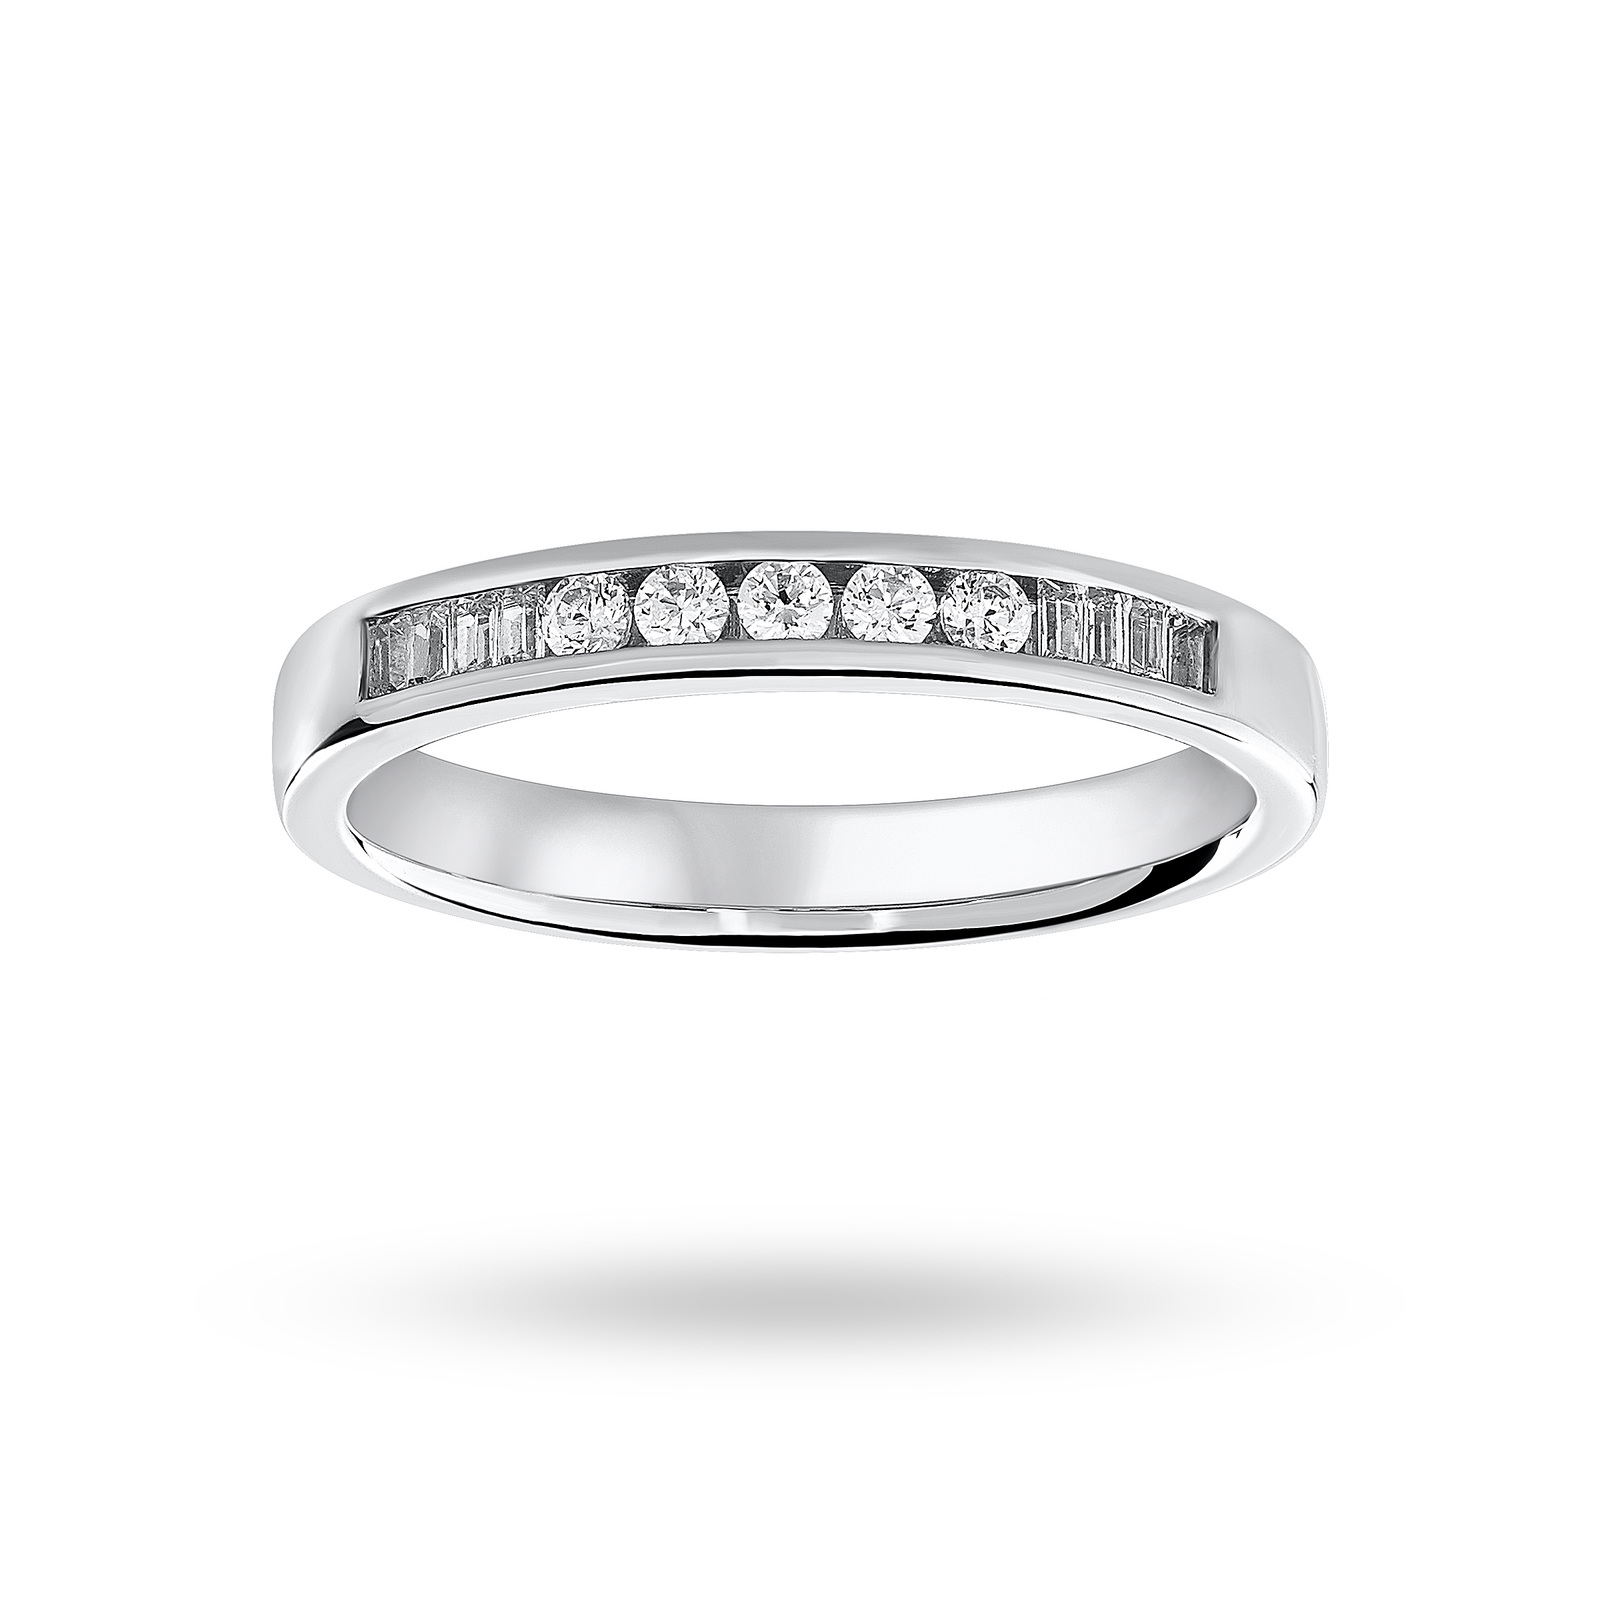 18ct White Gold 0.20ct Half Eternity Ring - Ring Size K